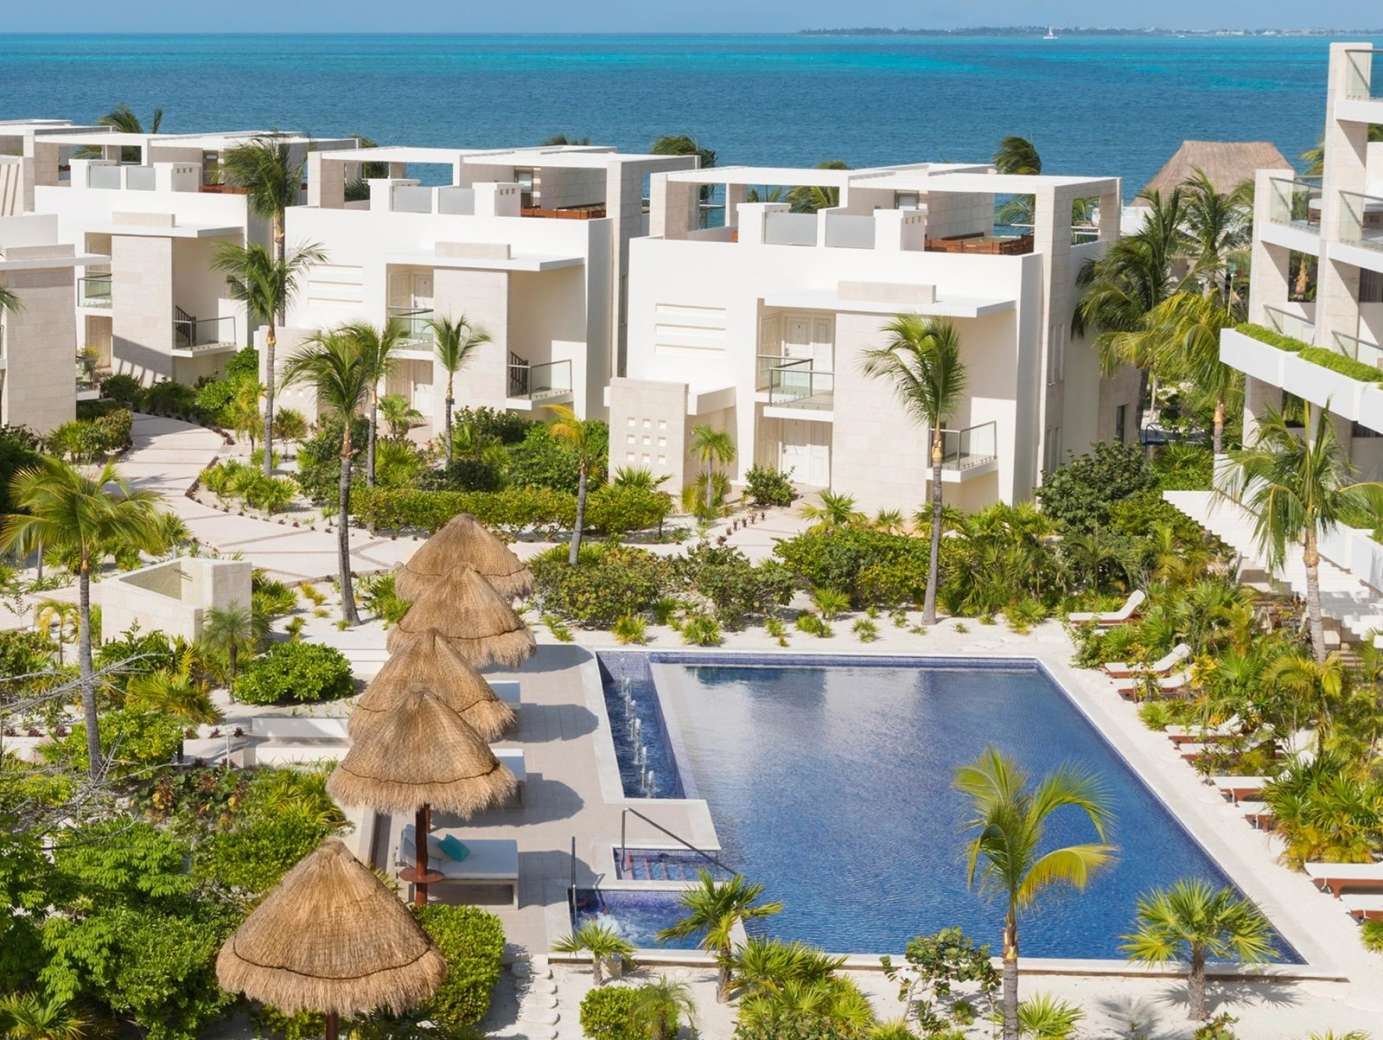 Luxury 5* Mexico Adults-Only Boutique All-Suite Retreat w/Exclusive Ocean View Upgrade, Spa & More - Save 50%